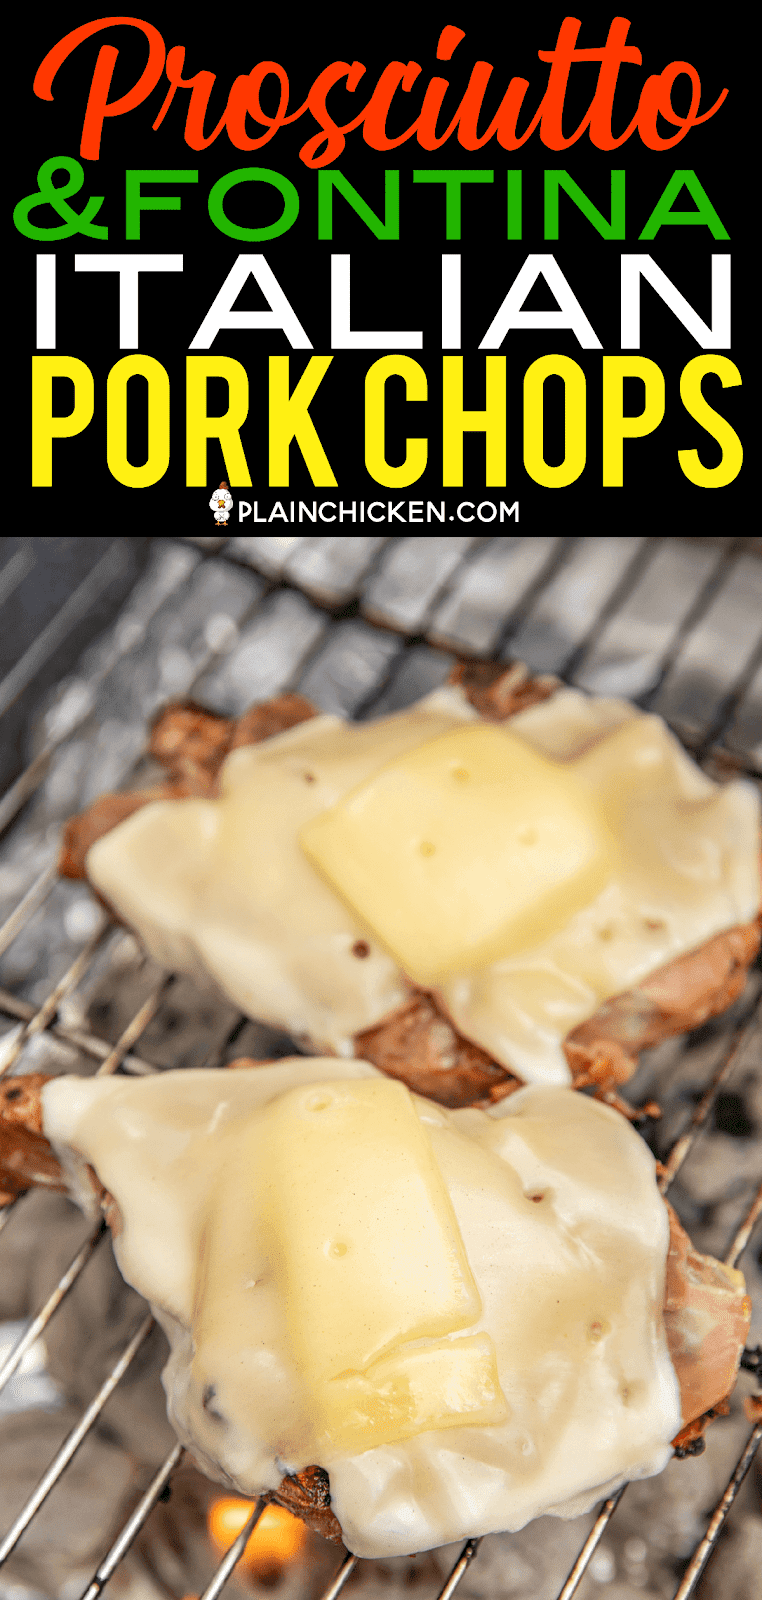 Prosciutto & Fontina Topped Italian Pork Chops - OMG! Better than any restaurant! These might be the BEST pork chops we've ever eaten! Pork chops marinated in Italian dressing and Worcestershire sauce then grilled and topped with prosciutto and Fontina cheese. Pork on pork with cheese! YUM! SO simple and they taste AMAZING! #porkchop #grilling